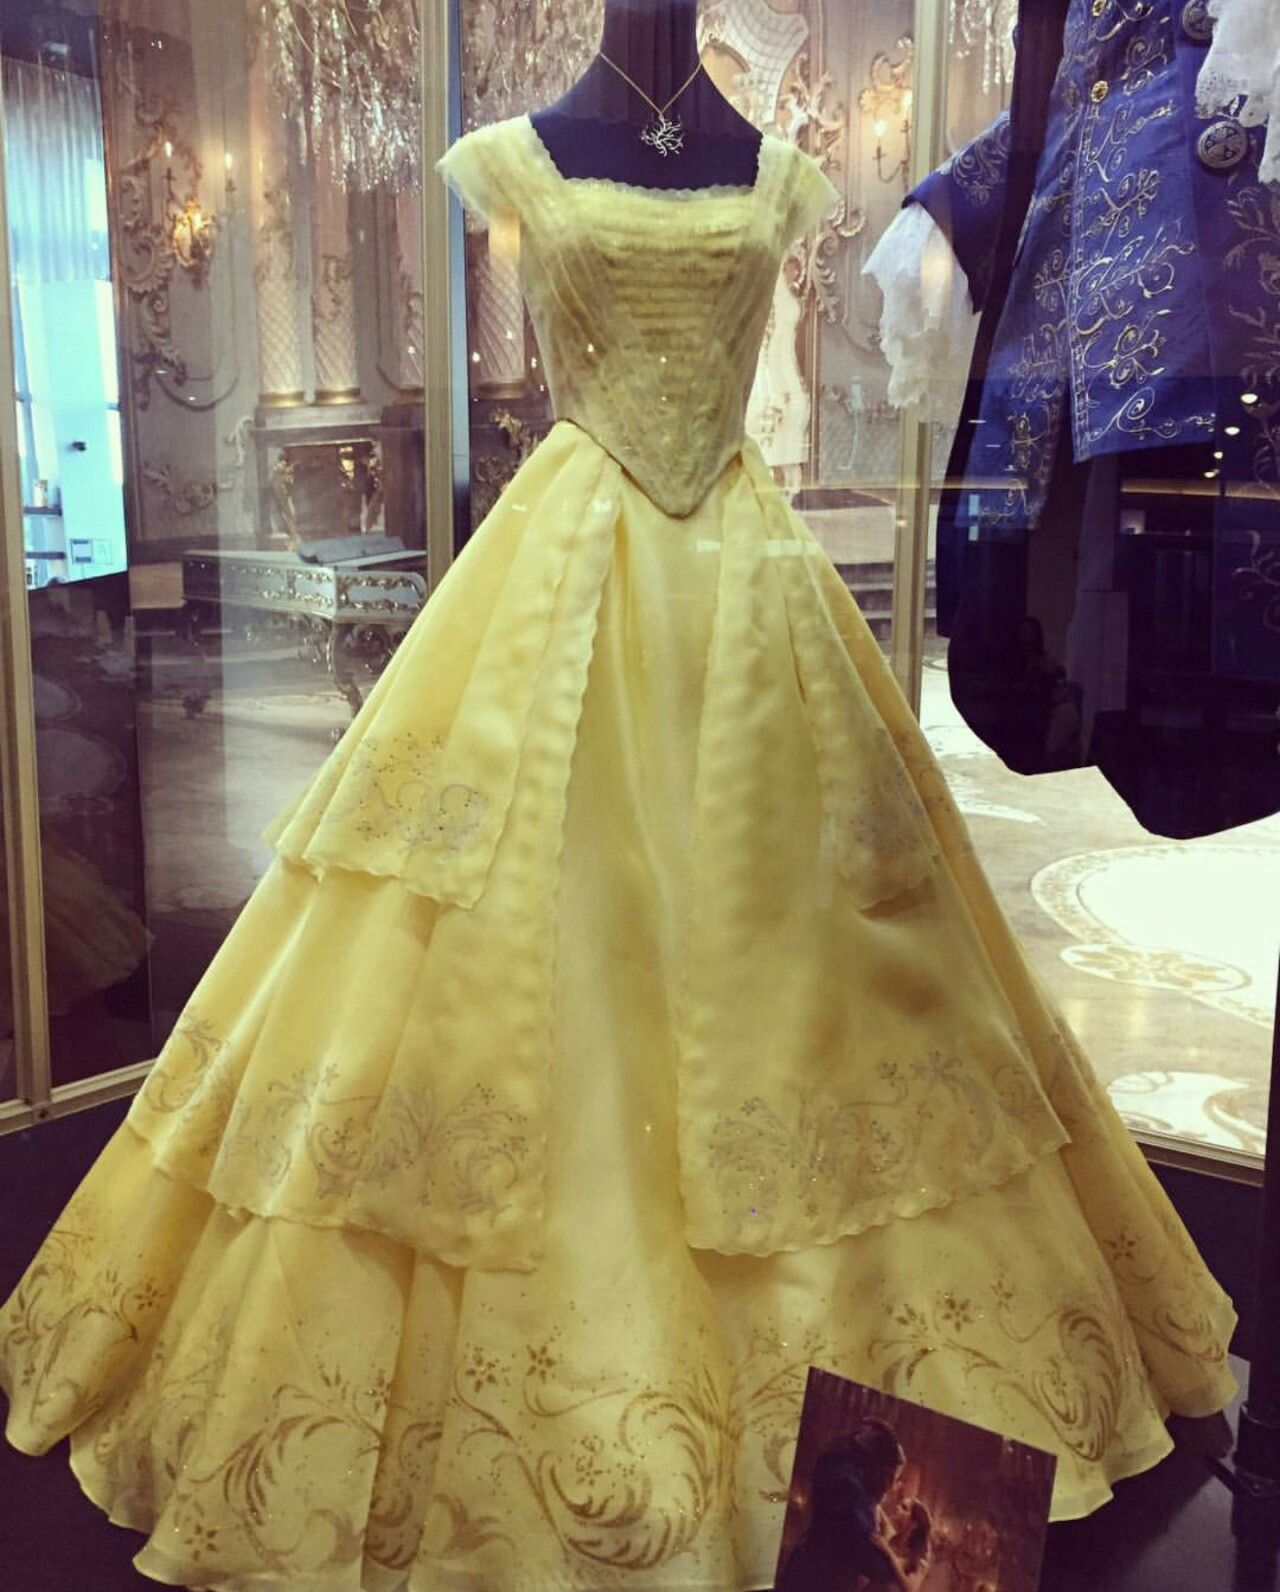 Belle S Ballgown From Disney Live Action Beauty And The Beast 2017